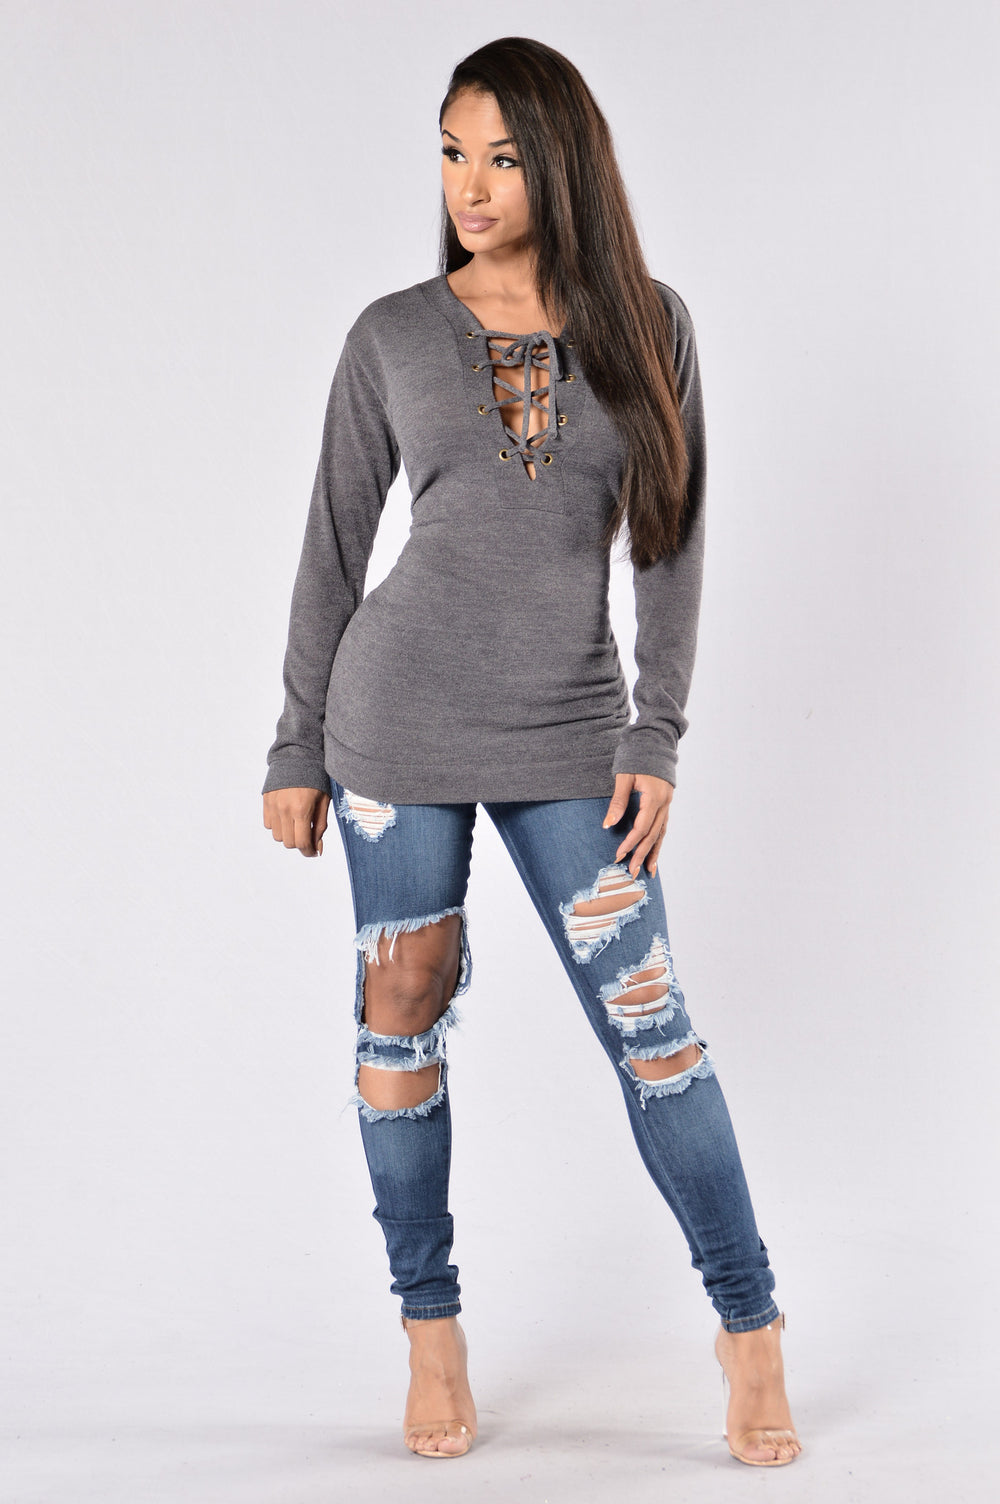 Kelso Top - Charcoal